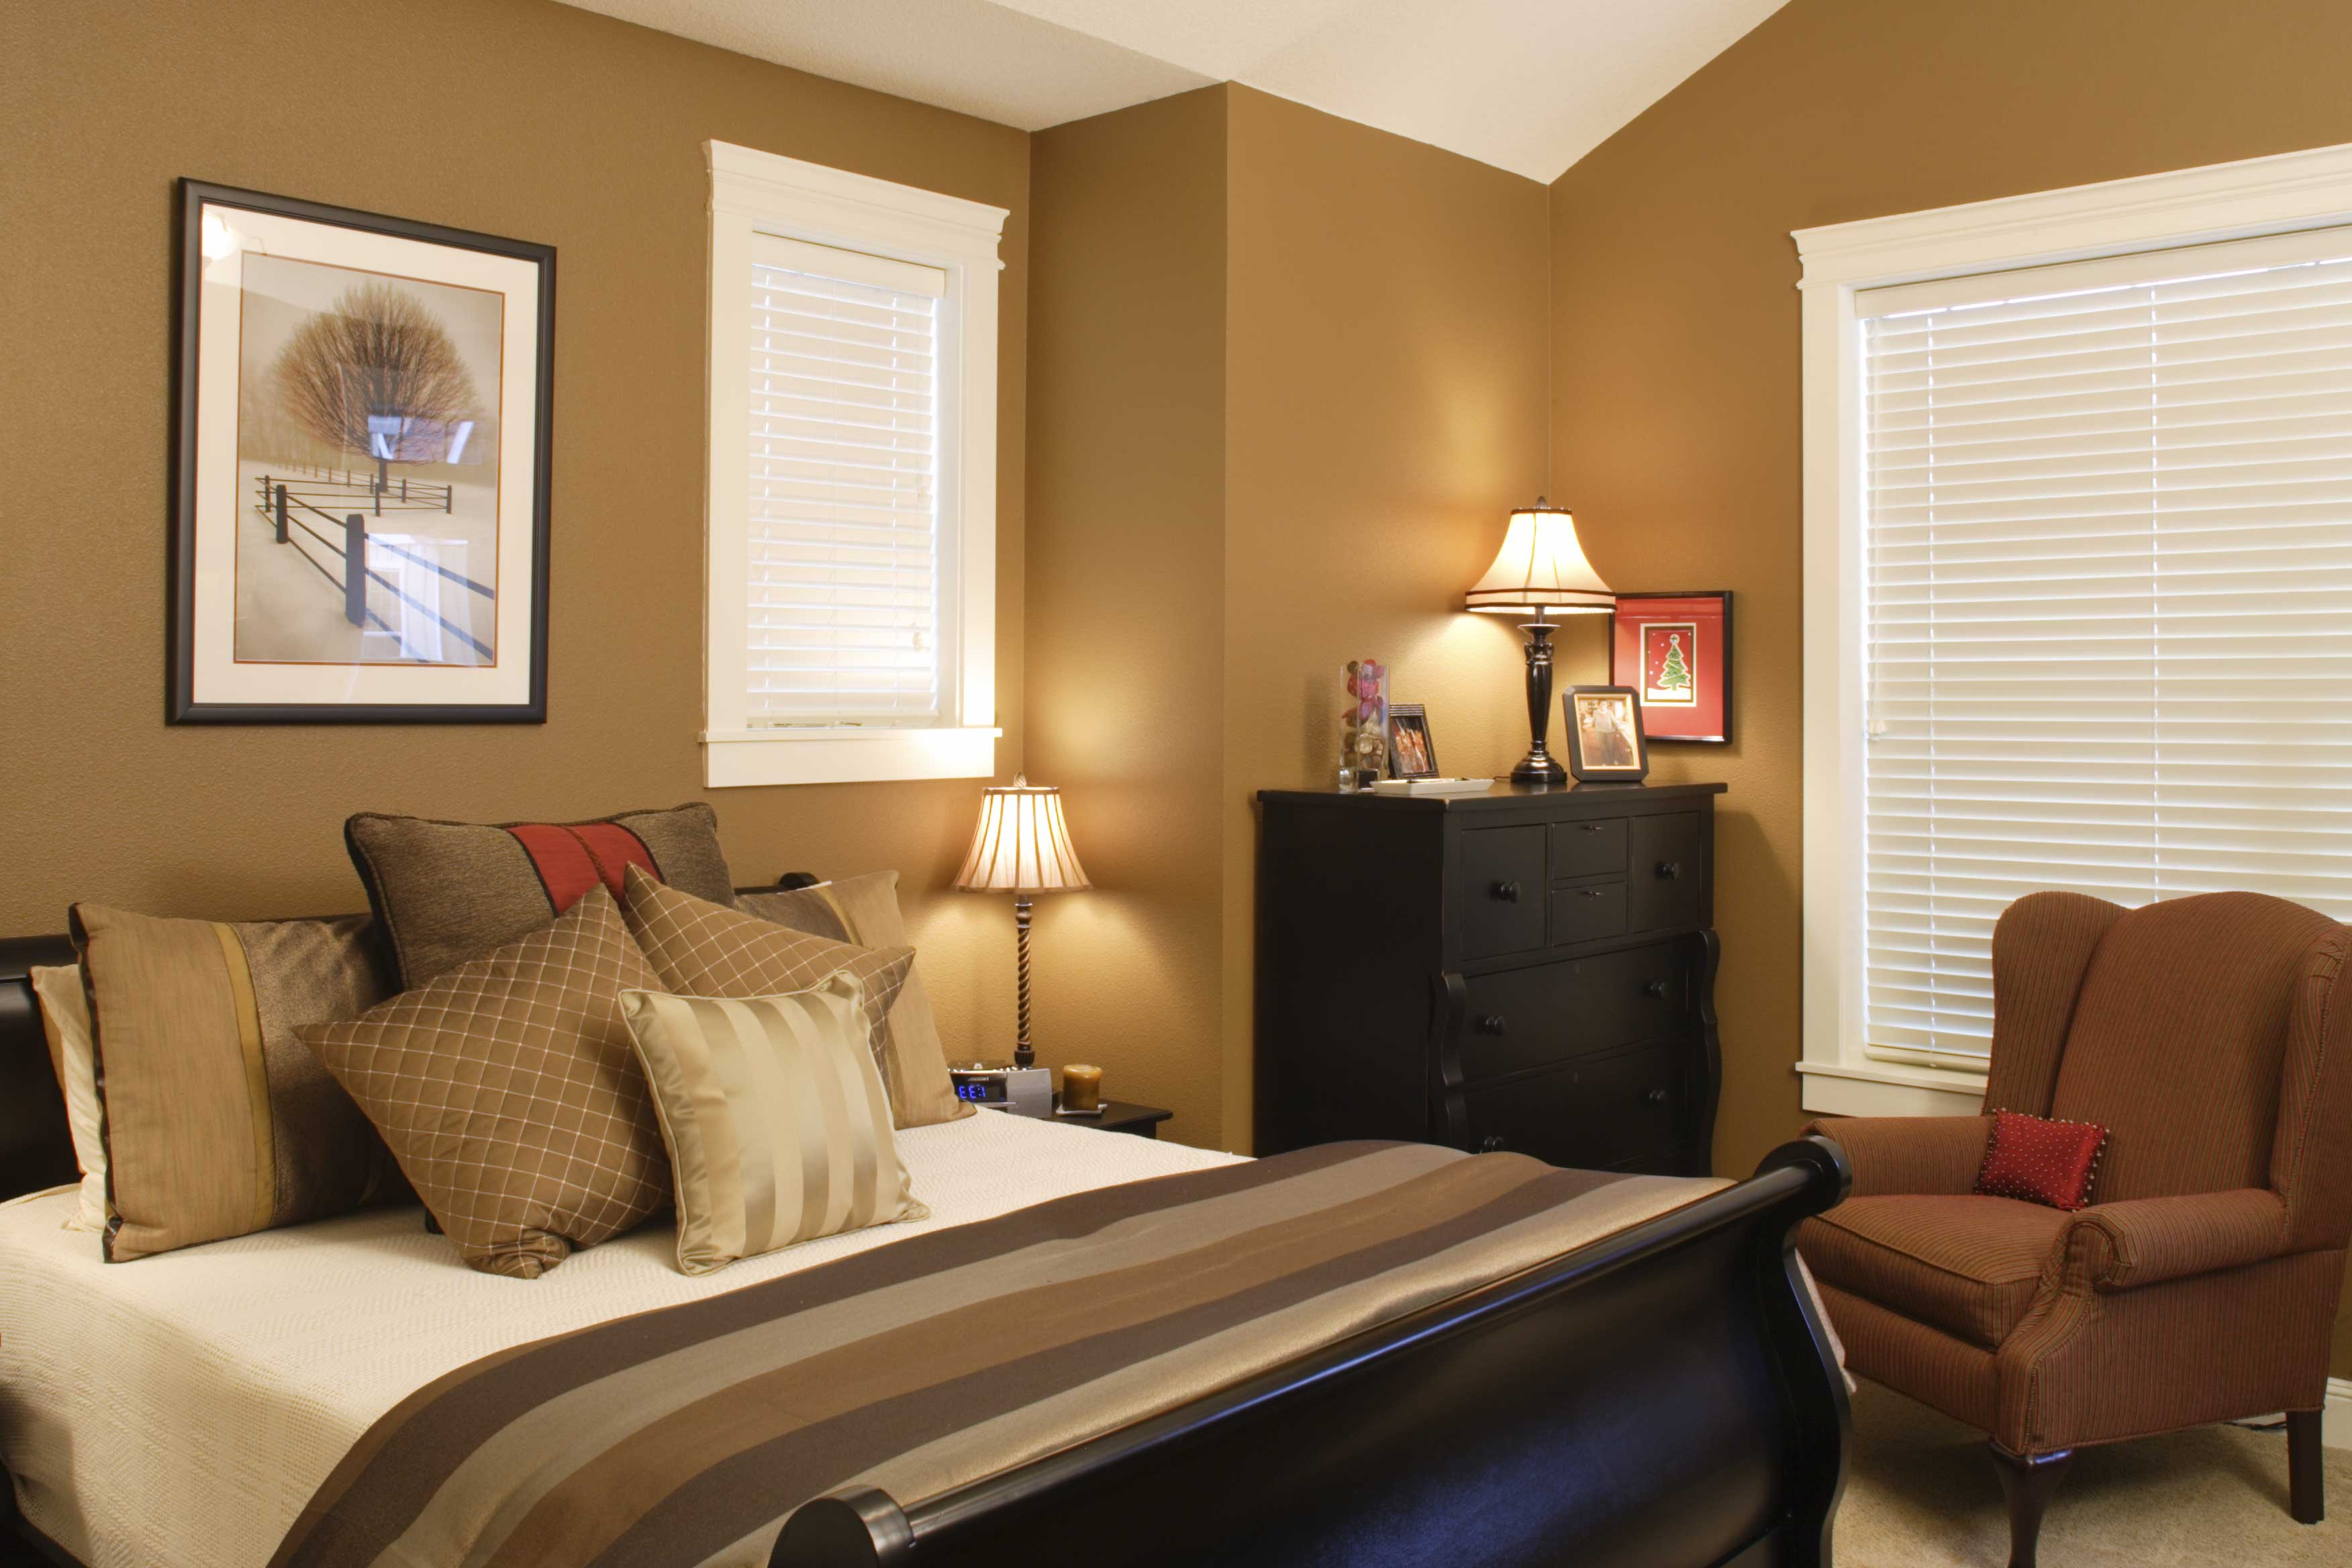 Brown Color For Warm Sense Of Interior Paint Color 2014 For Bedroom With  Dark Bed Cabinet